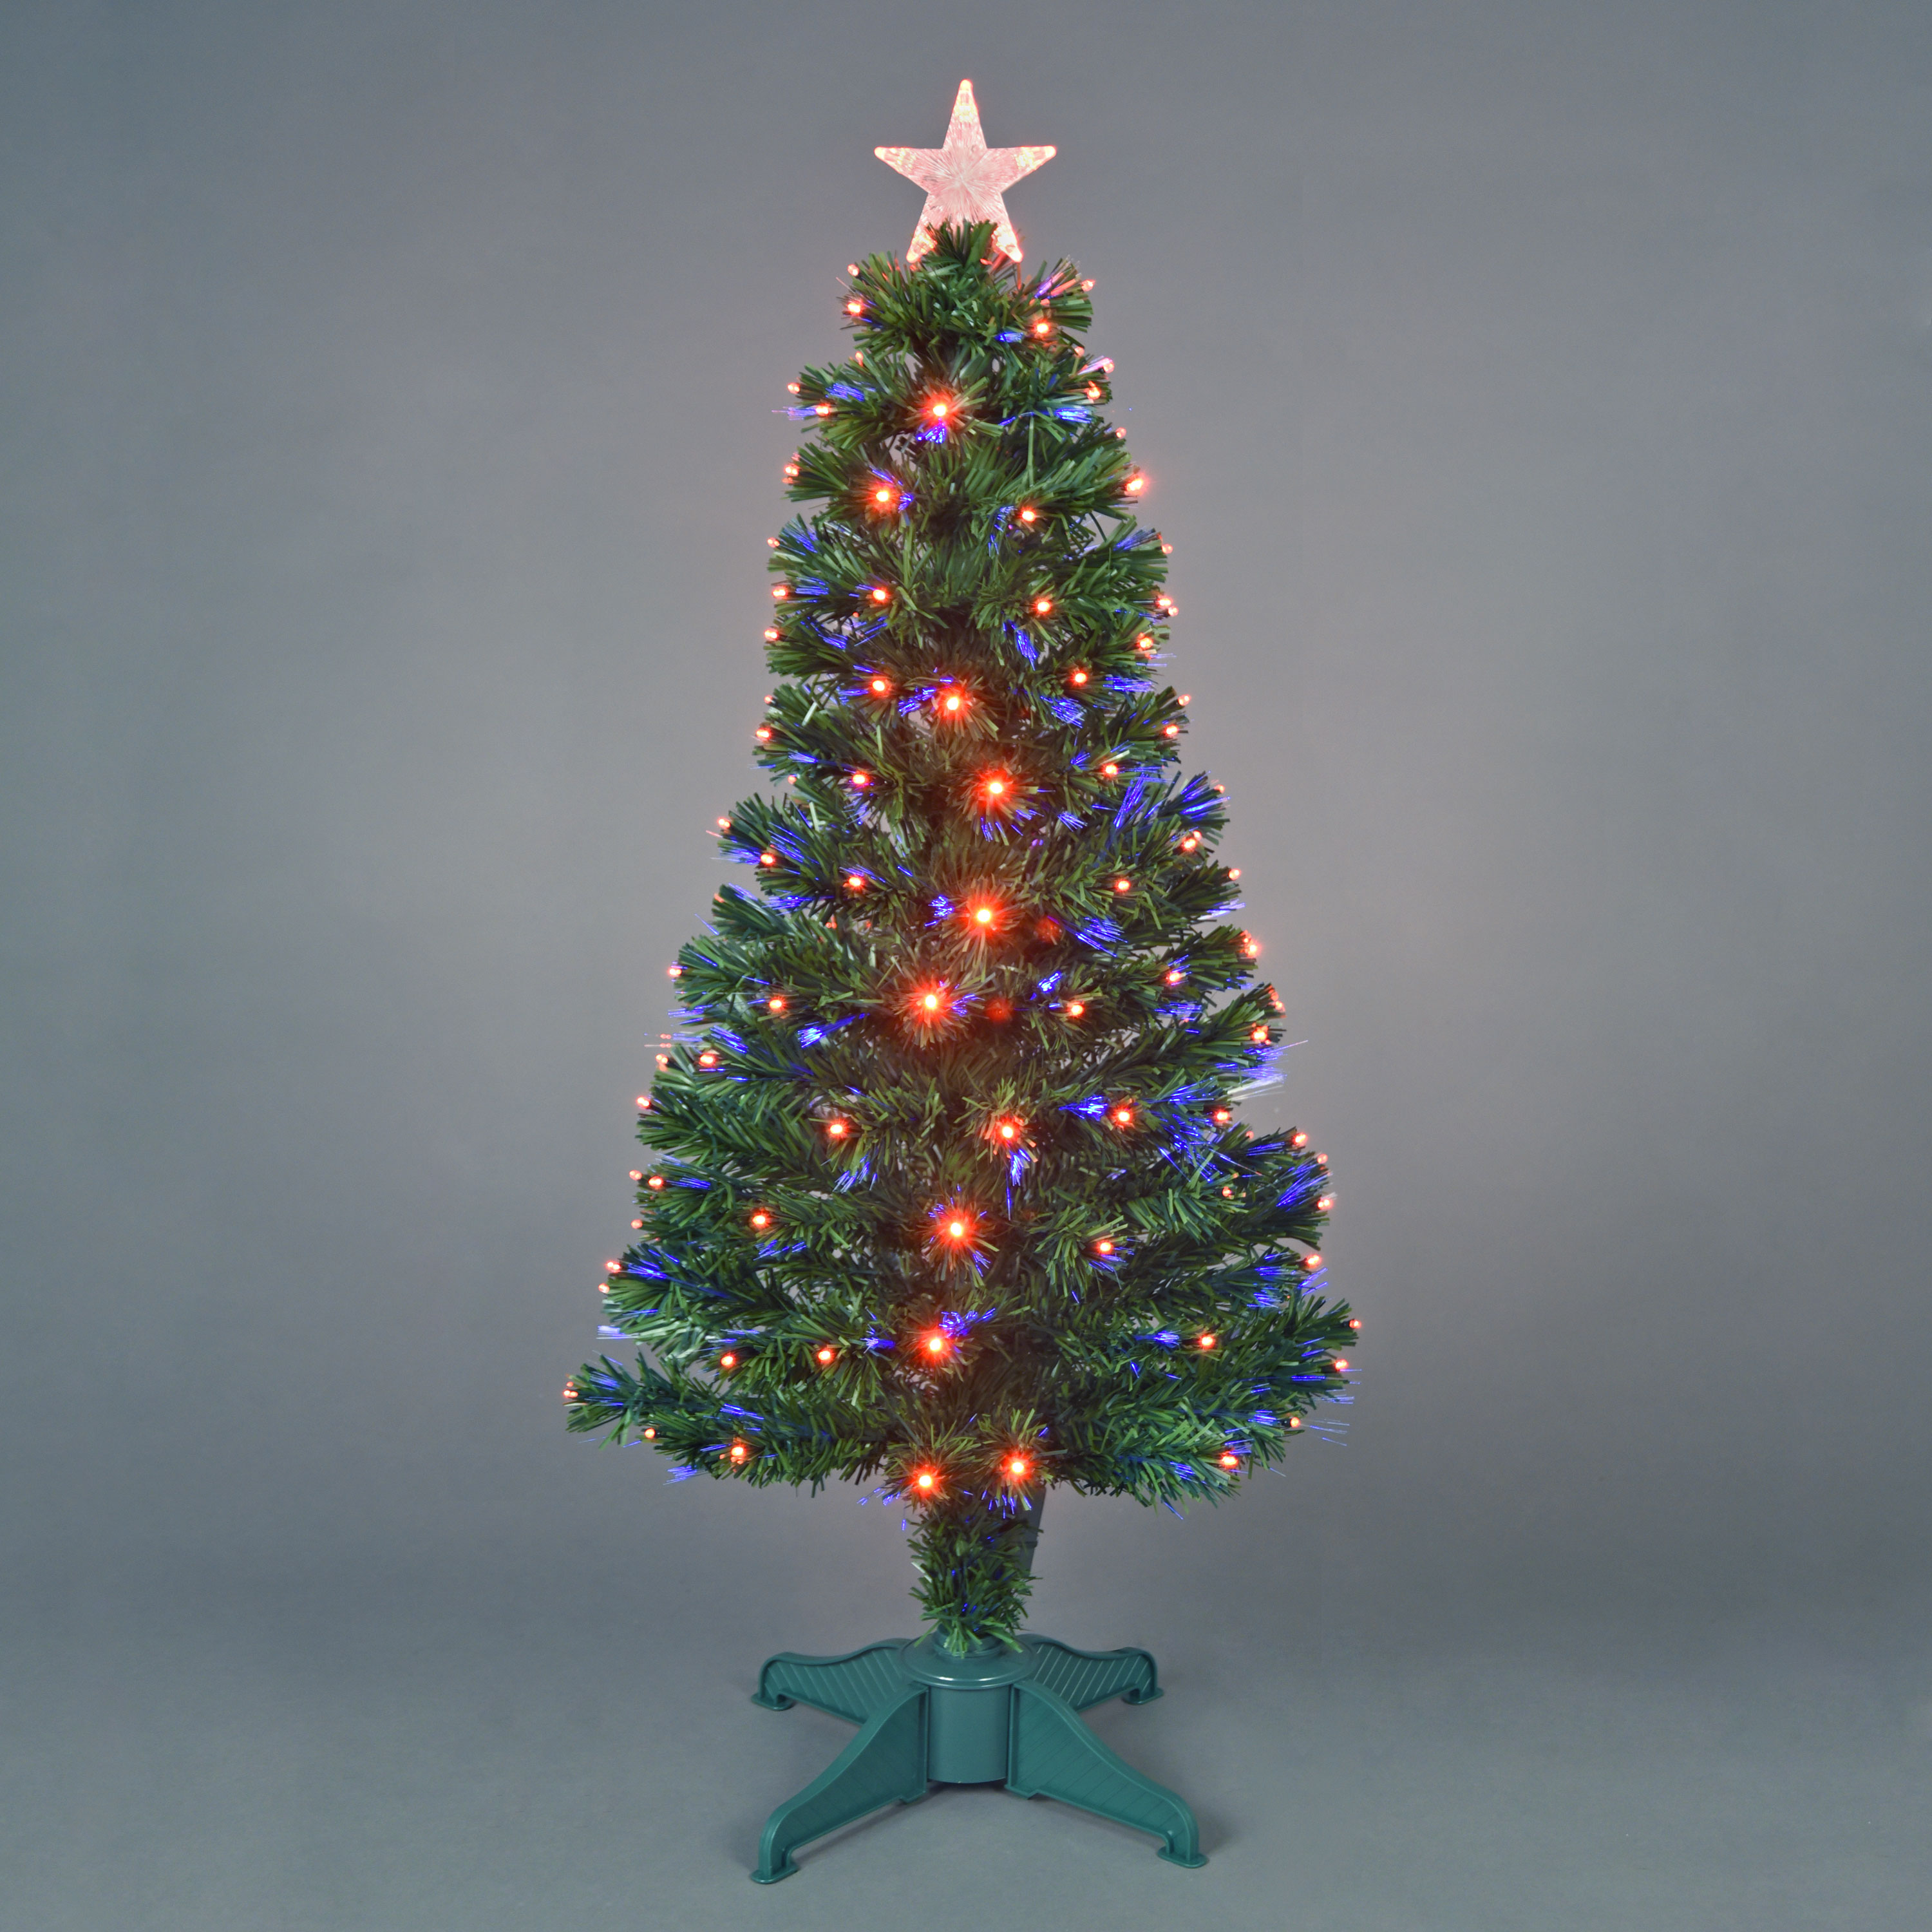 120cm4ft Red Saturn Fibre Optic Christmas Tree with 130 LEDs